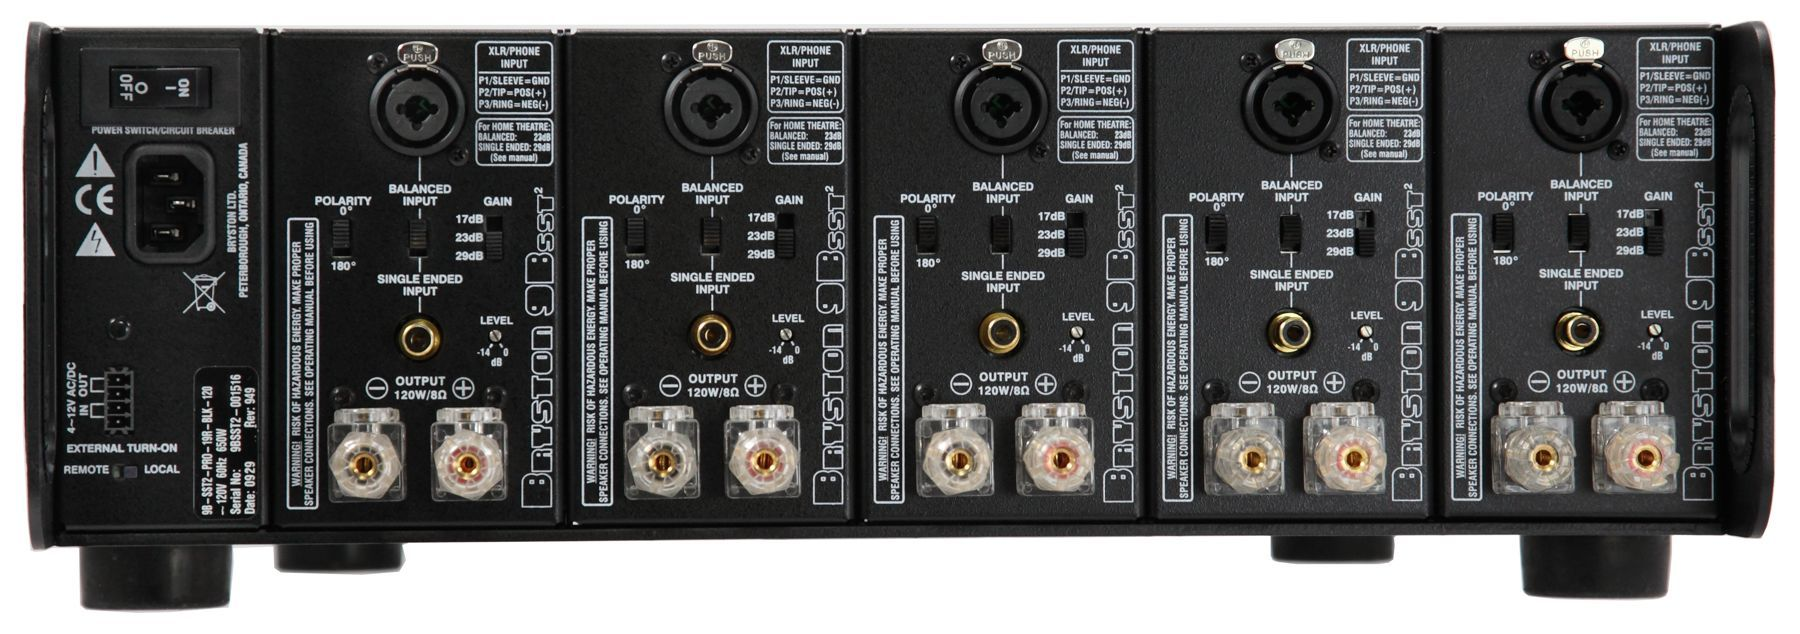 Bryston 9BSST3 Multi-Channel Power Amplifier